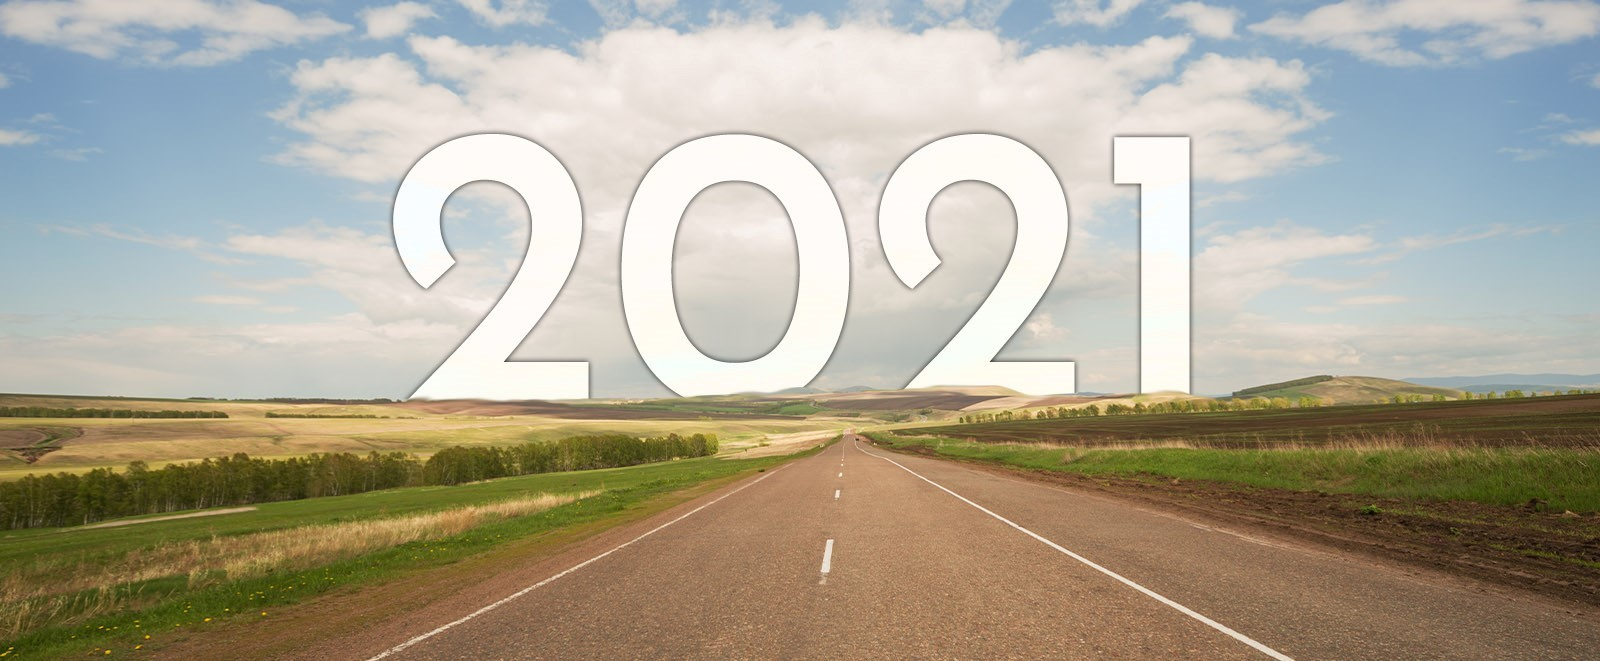 2021 Road Ahead